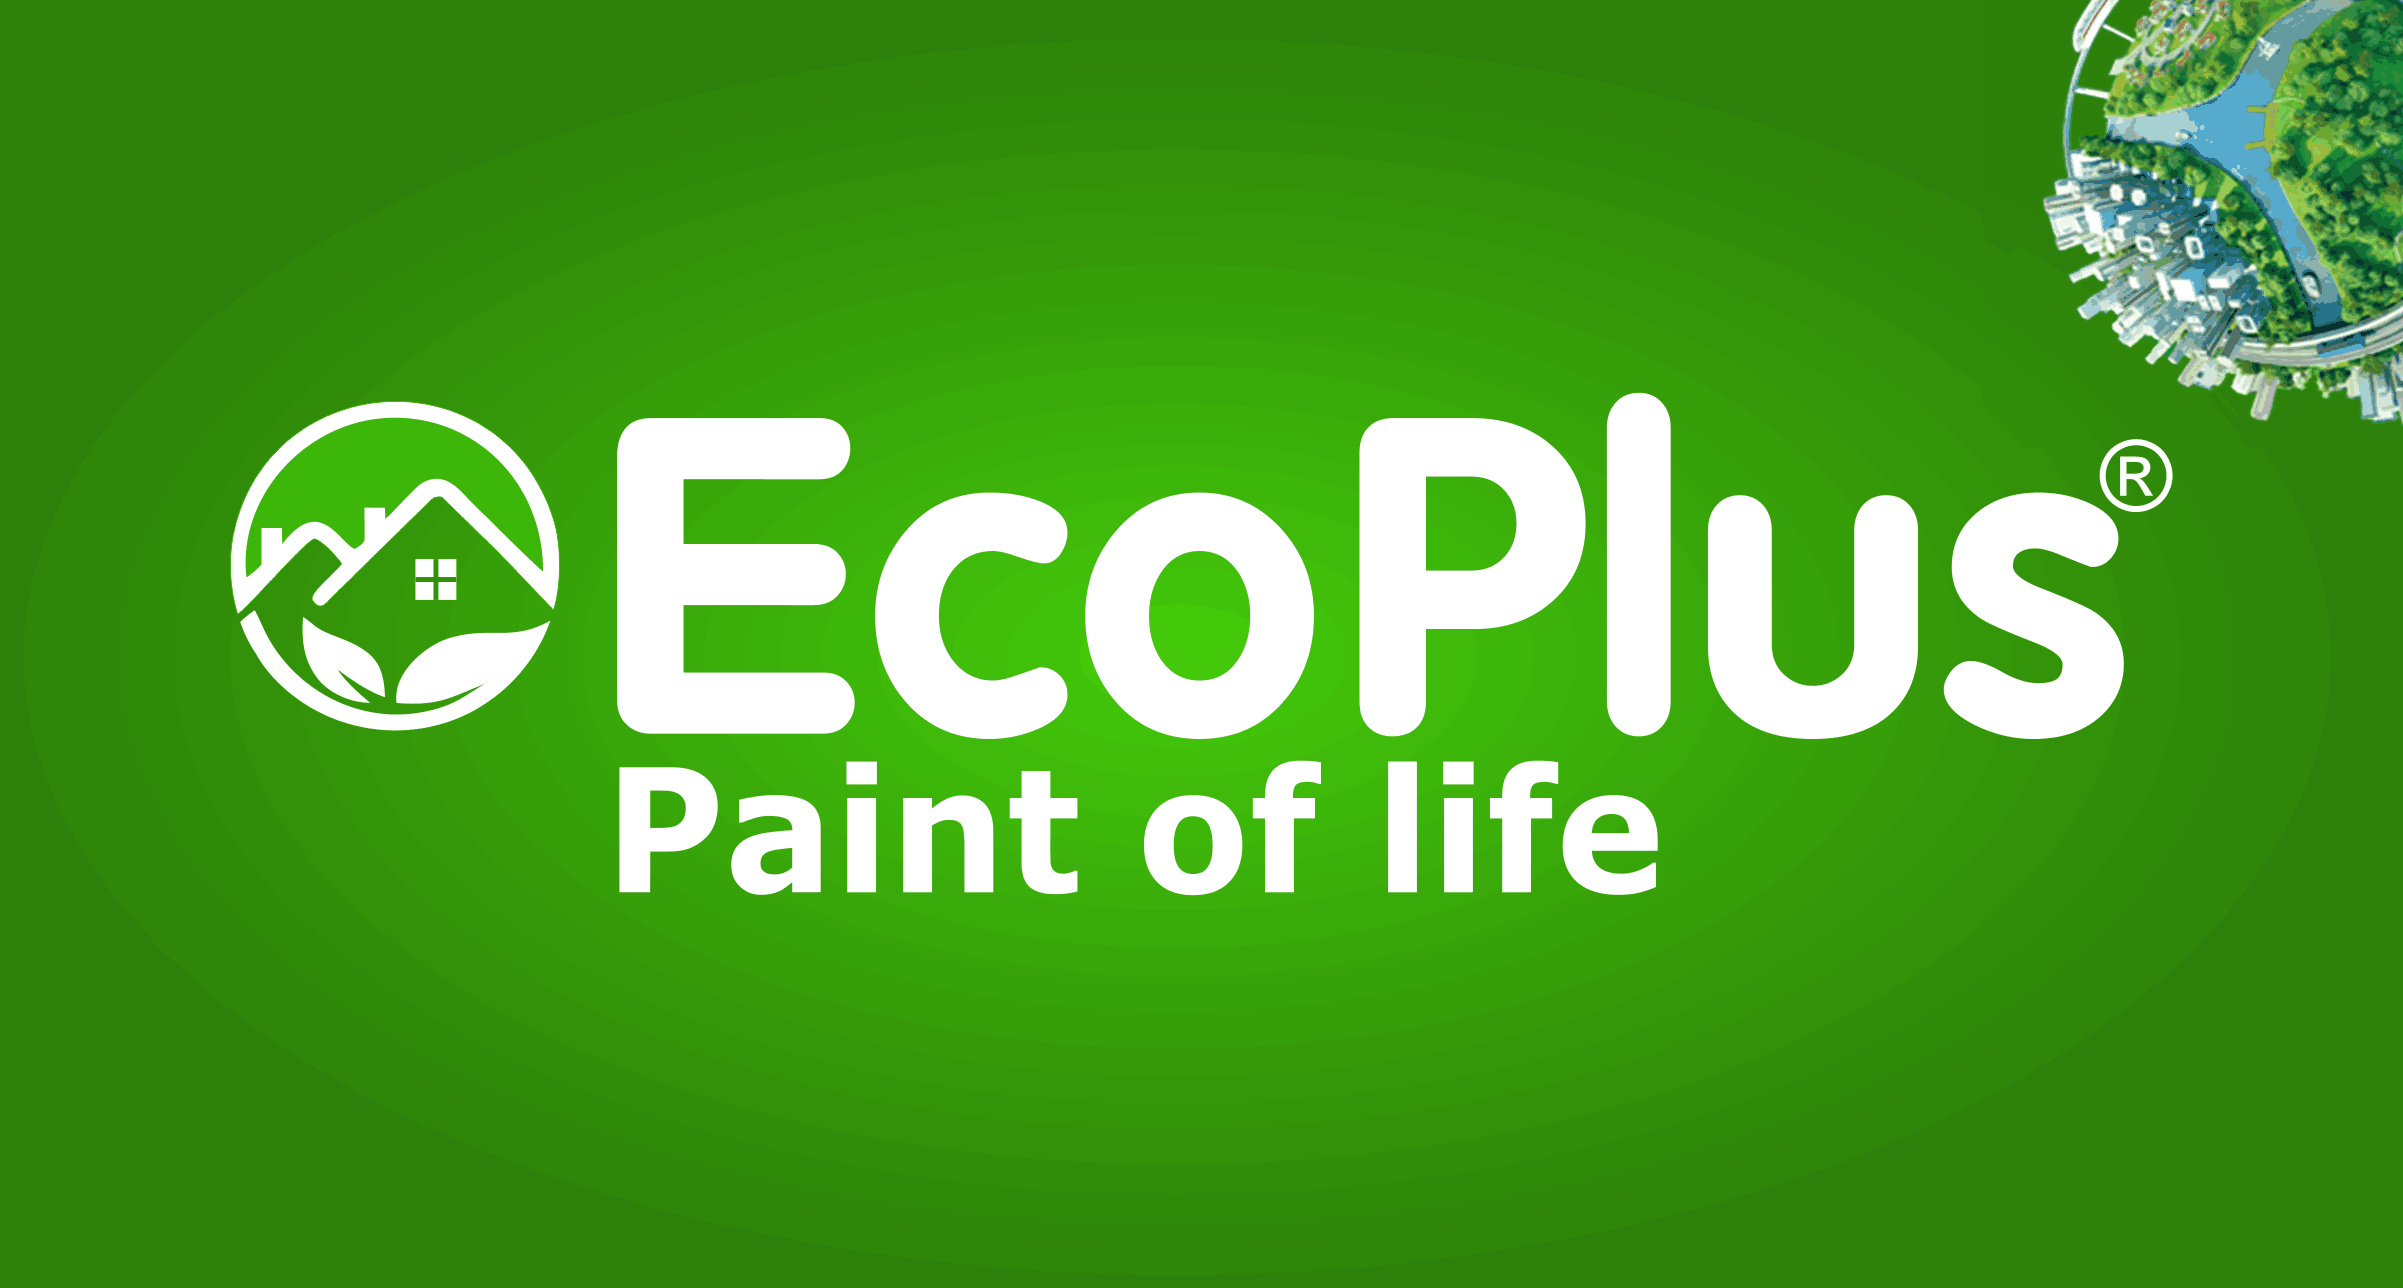 Ecolus Paint - Paint of life